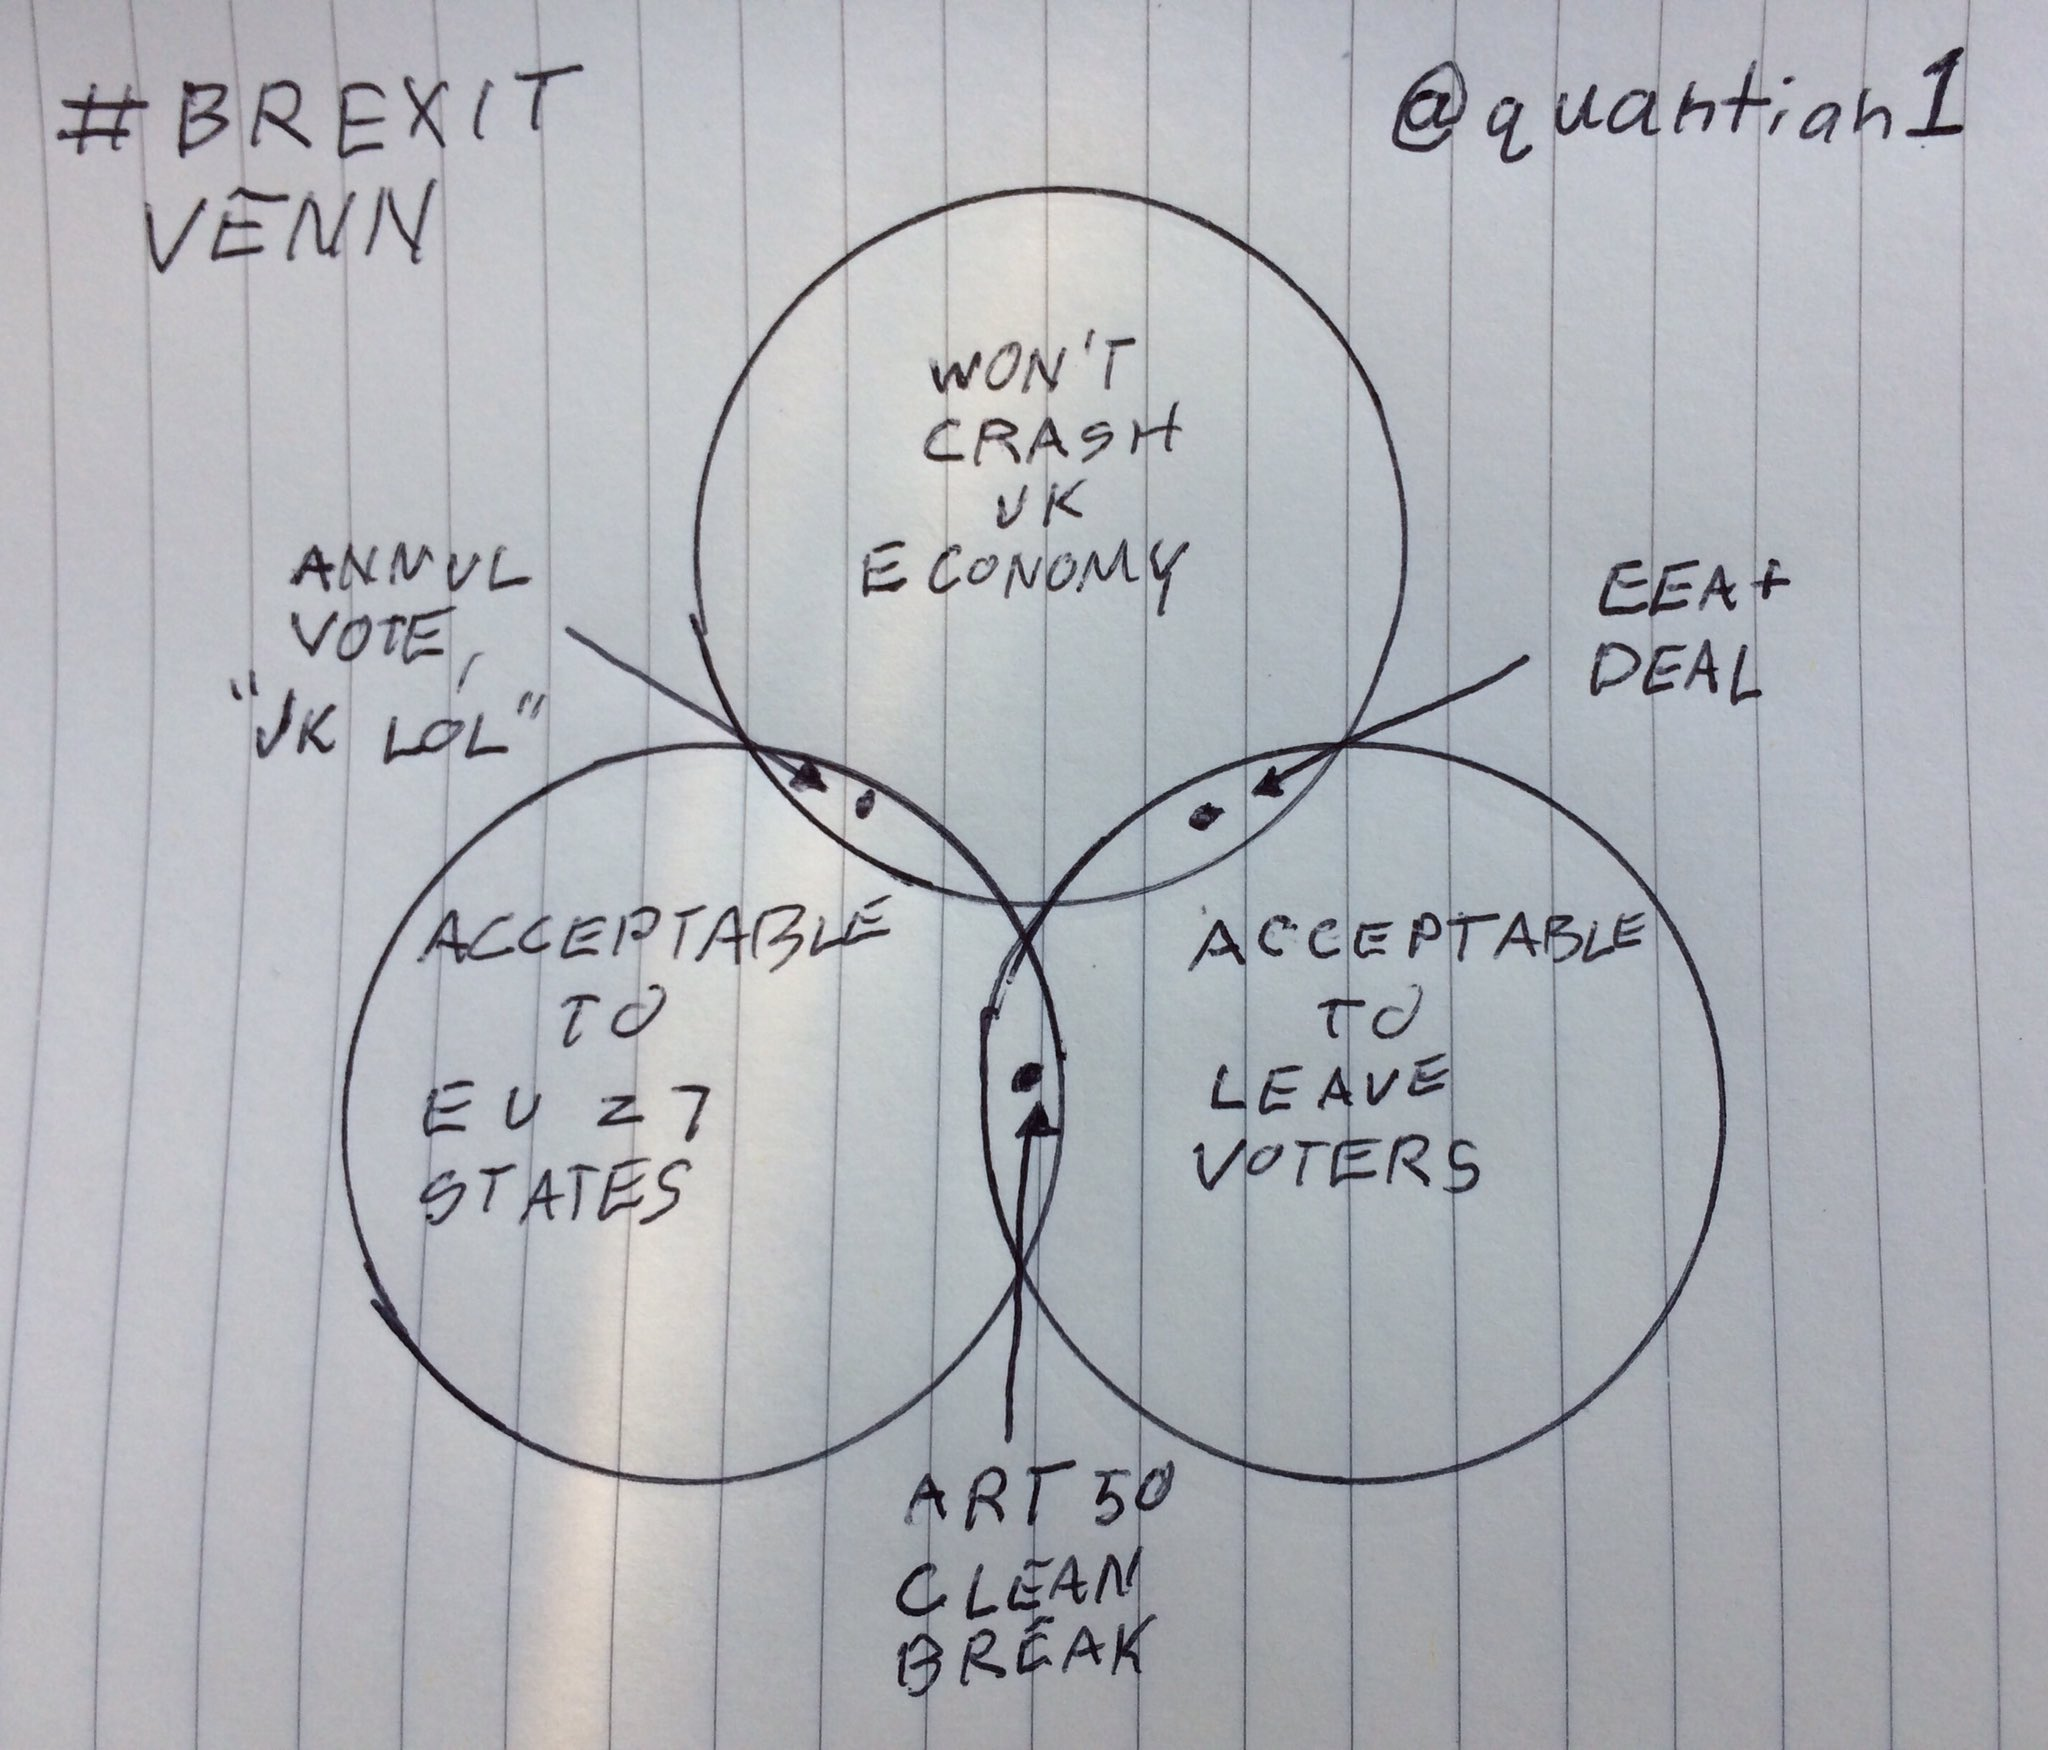 brexit has put the uk in an impossible position  this venn